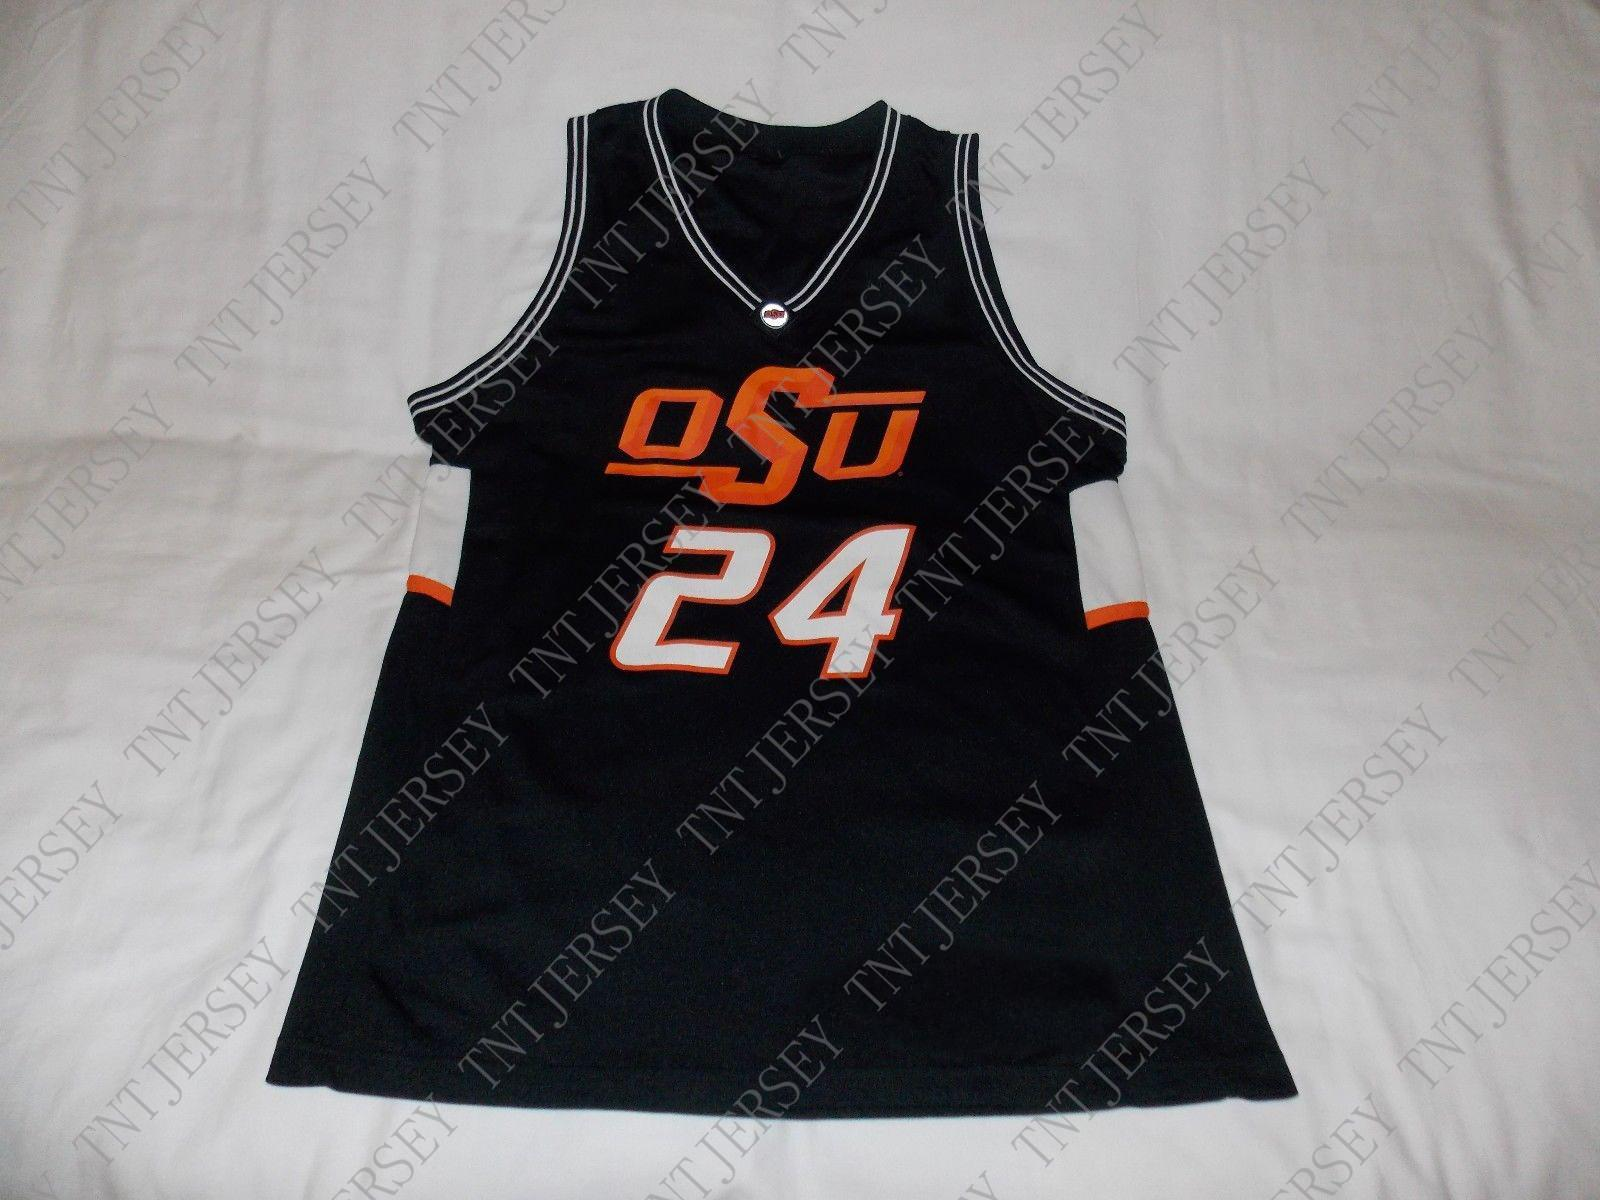 9ebb97eee 2019 Cheap Custom OSU Cowboys Basketball Jersey  24 Stitched Customize Any  Number Name MEN WOMEN YOUTH XS 5XL From Tntjersey